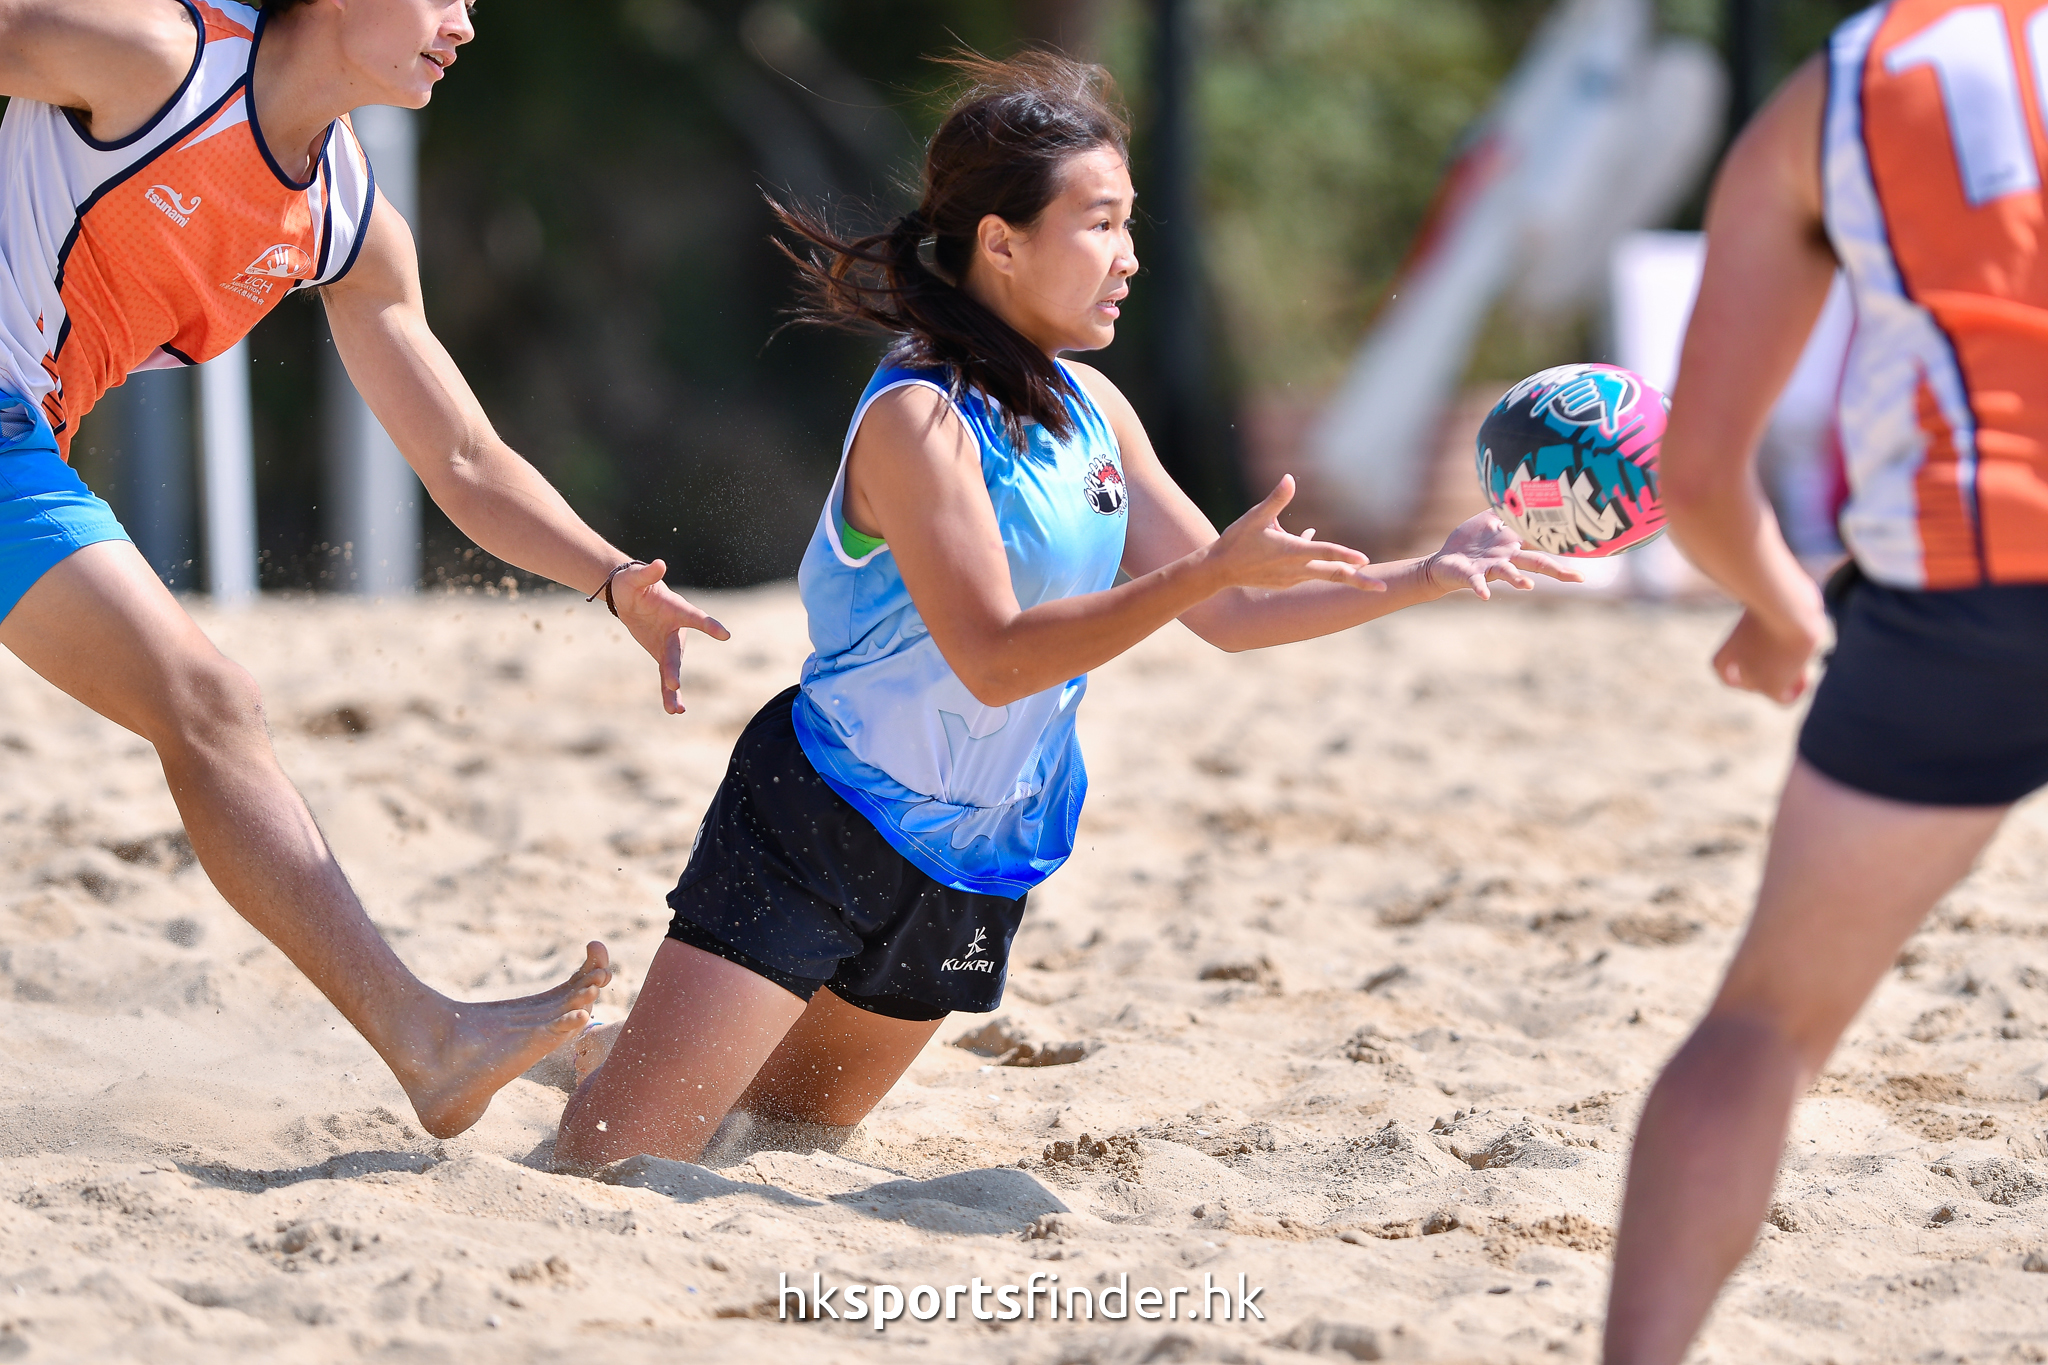 Her_GoldCoastTertiaryBeachRugby_16-11-12 11.31.12_000466.jpg